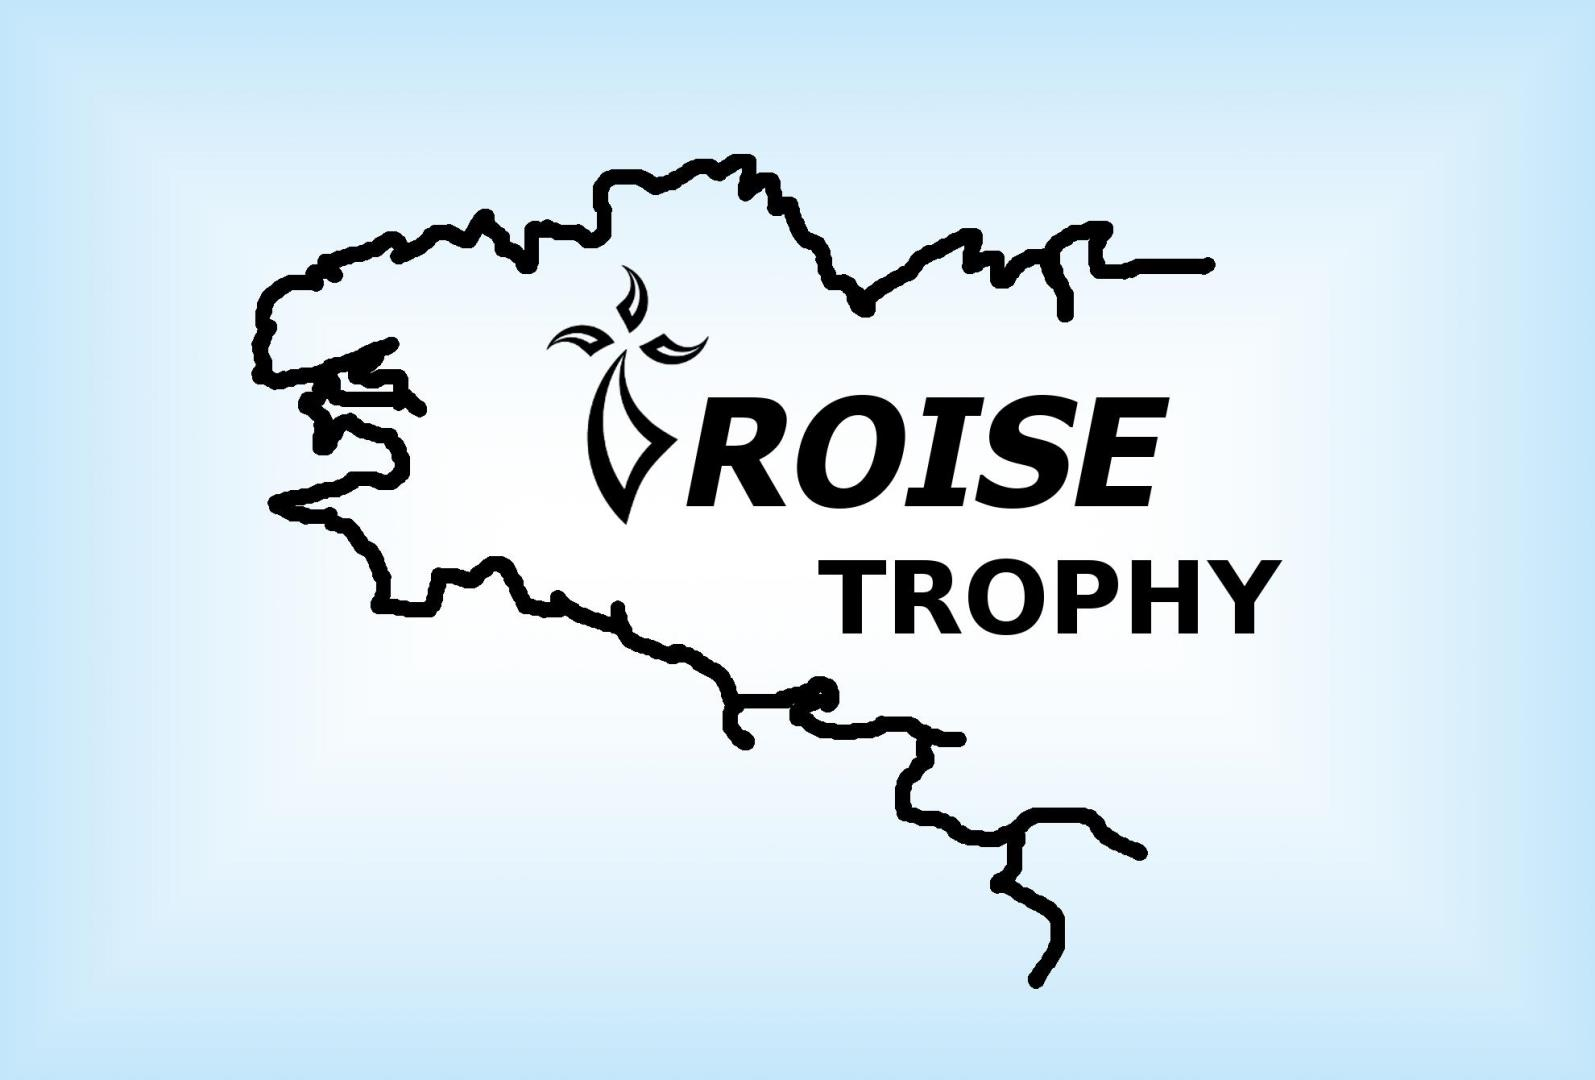 Association IROISE TROPHY